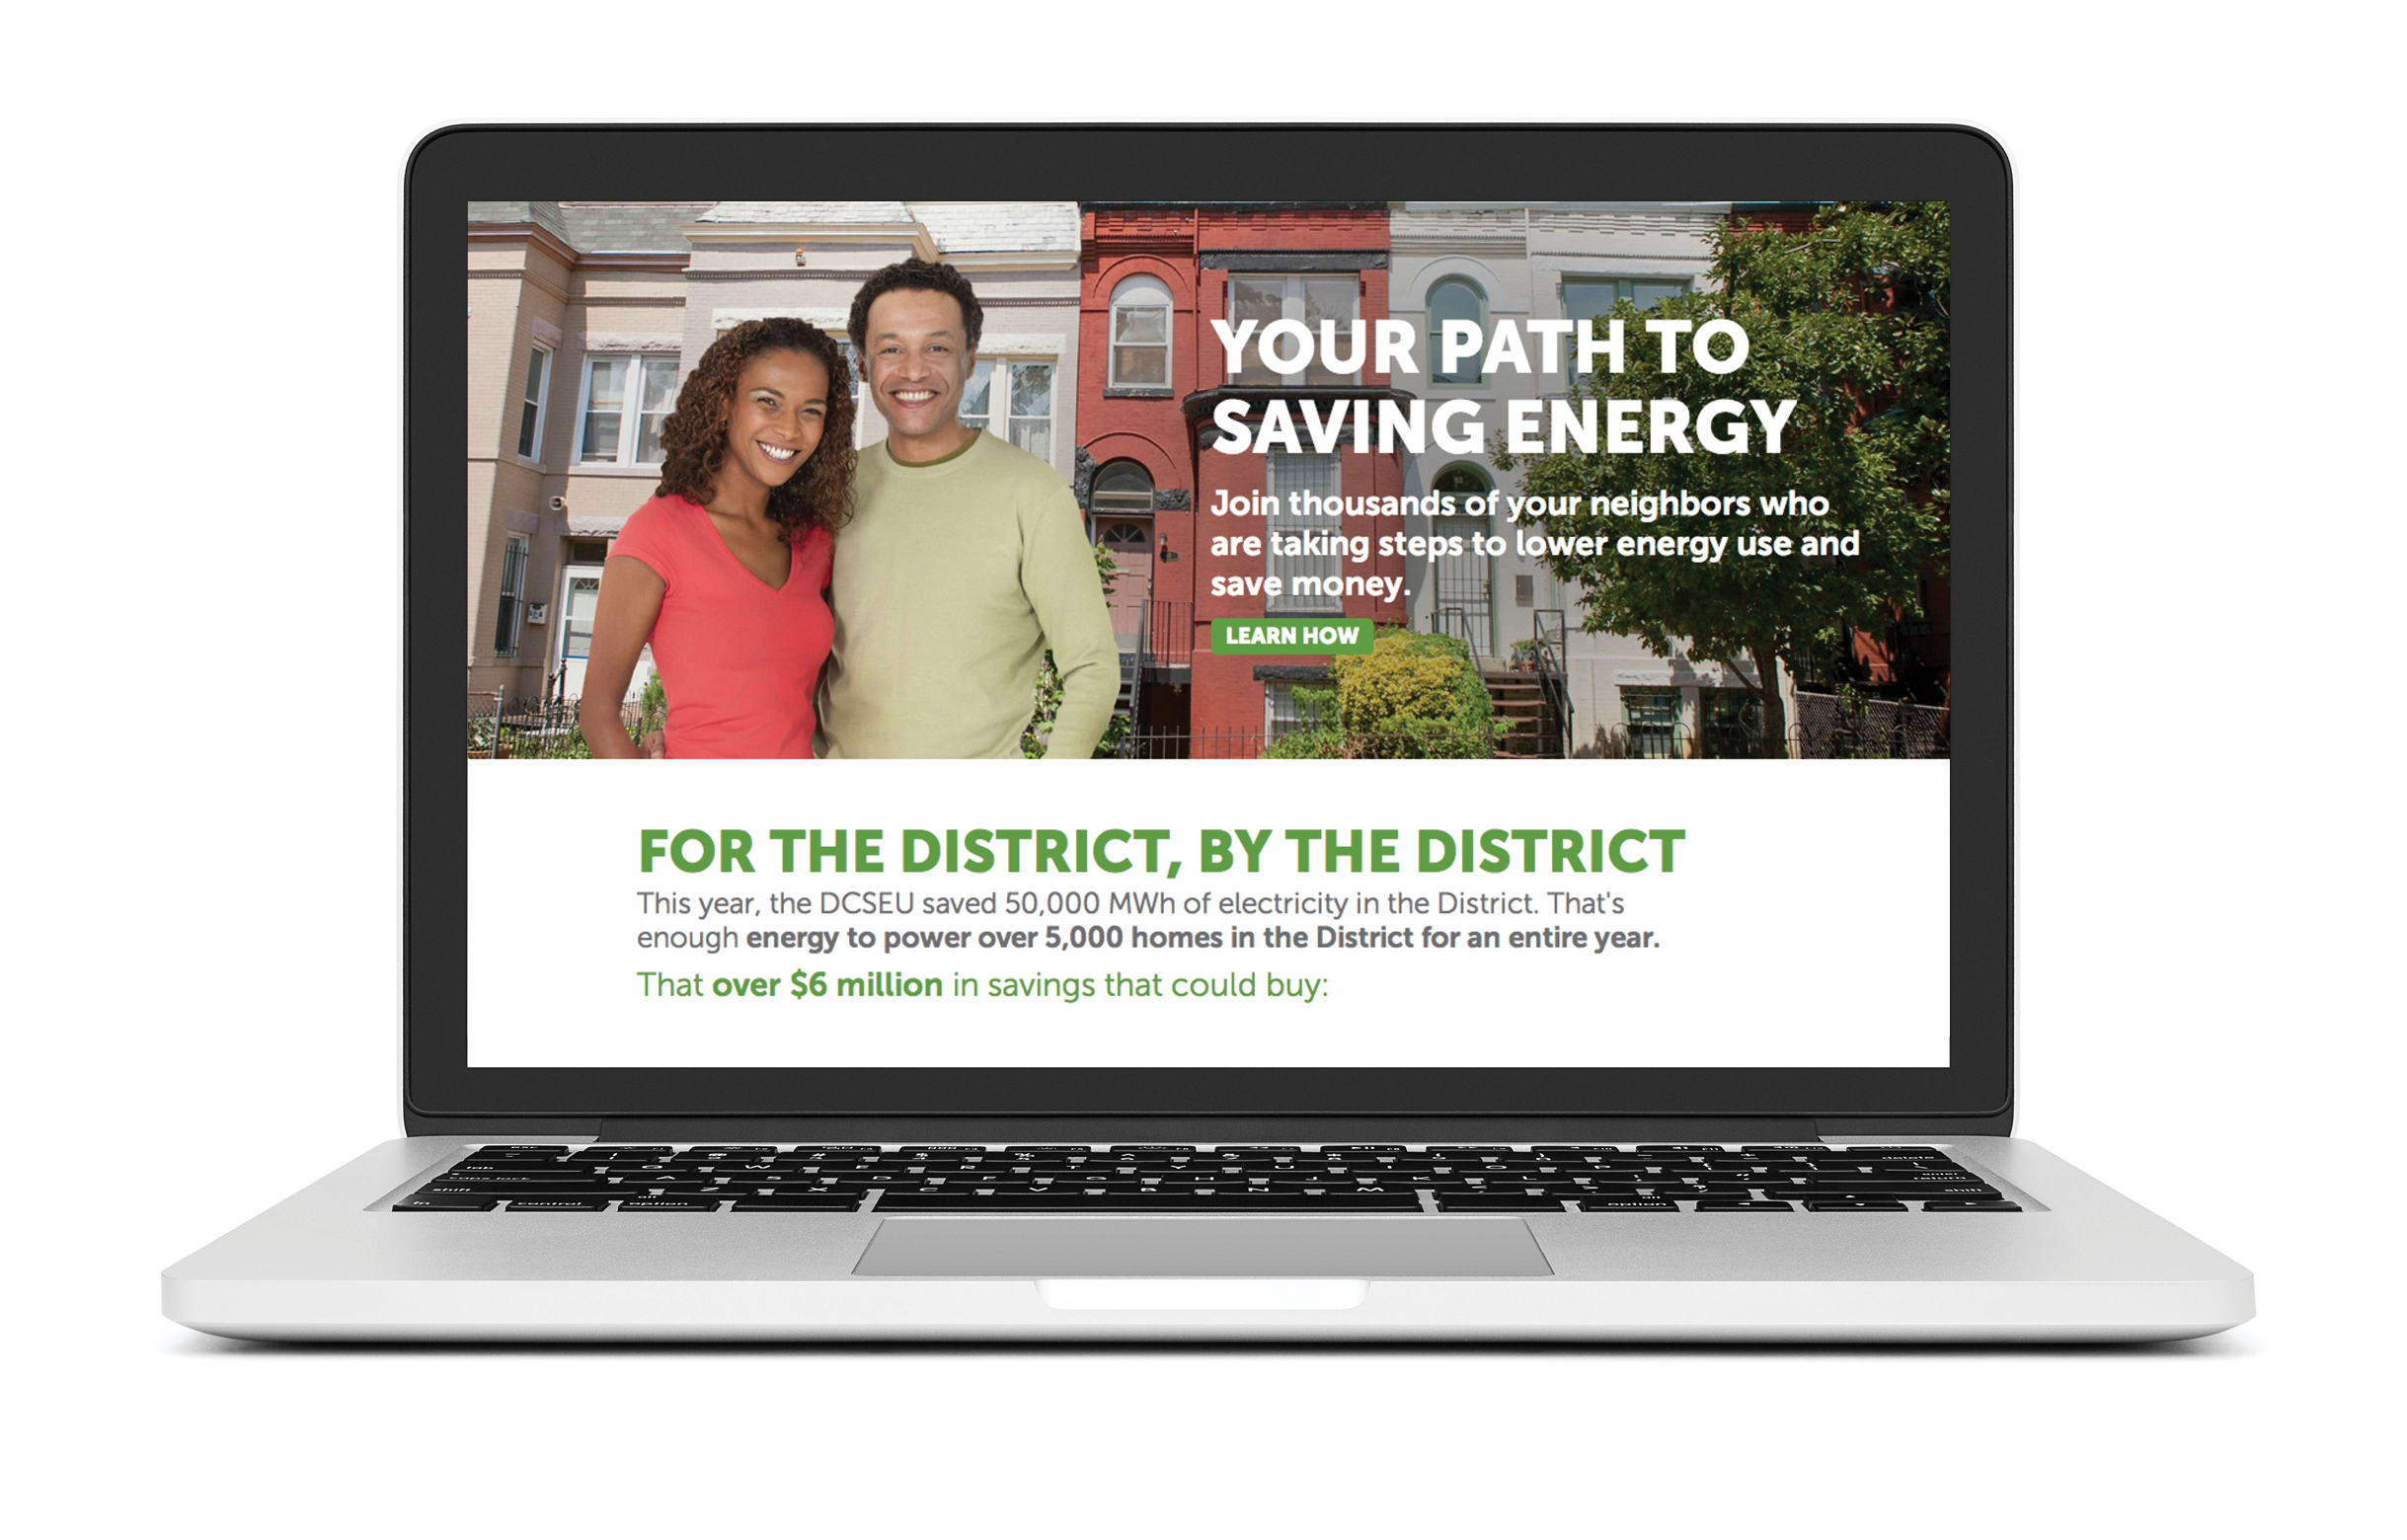 A Mac laptop showing the DCSEU landing web page with a full width image of a smiling couple in front of DC row homes. Next to the couple, the headline is set in a geometric sans serif type: 'Your path to saving energy'. Under the image is the headline 'For the District, By the District' with energy saving stats beneath it.